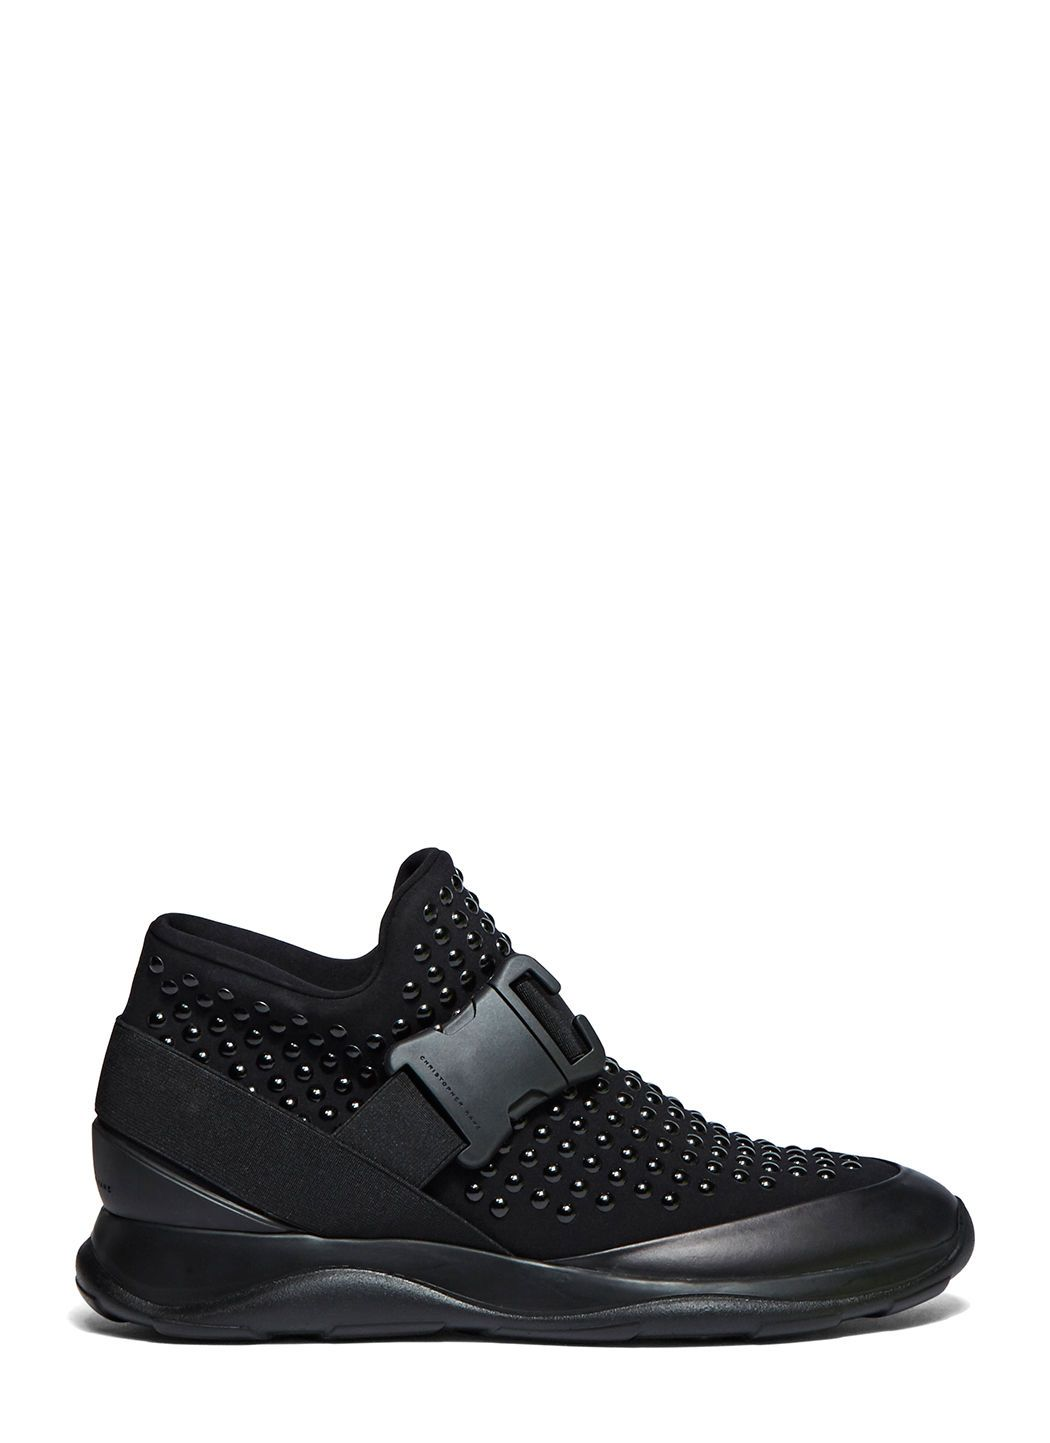 Christopher Kane Designer Shoes, Neoprene High Top Women's Sneakers